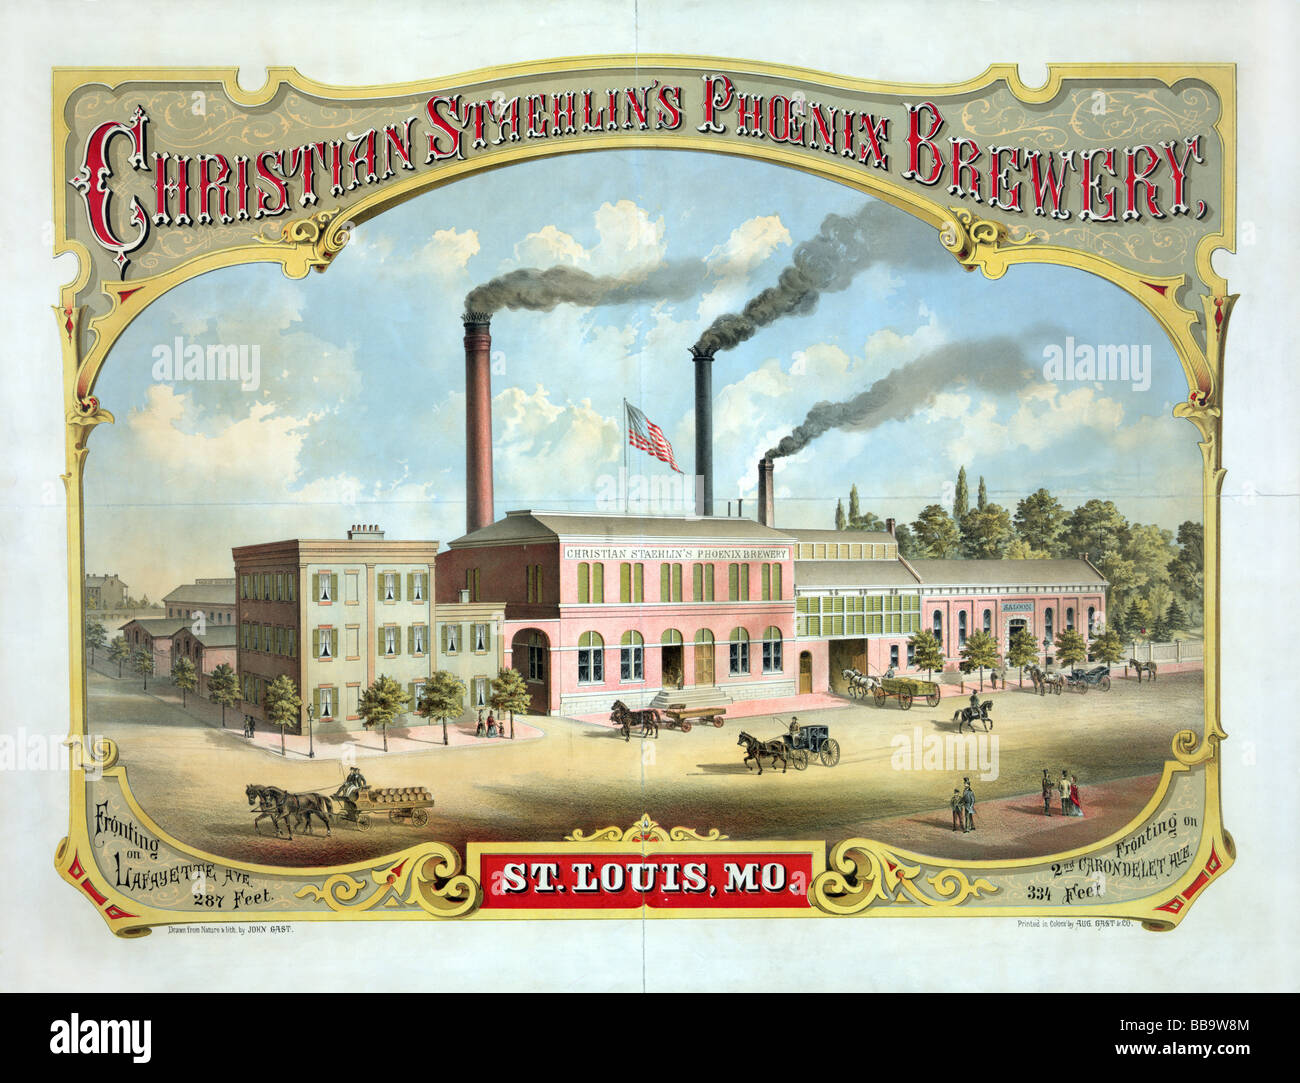 Late nineteenth century lithograph poster advertising Christian Staehlin's Phoenix Brewery, of St Louis, Missouri. - Stock Image